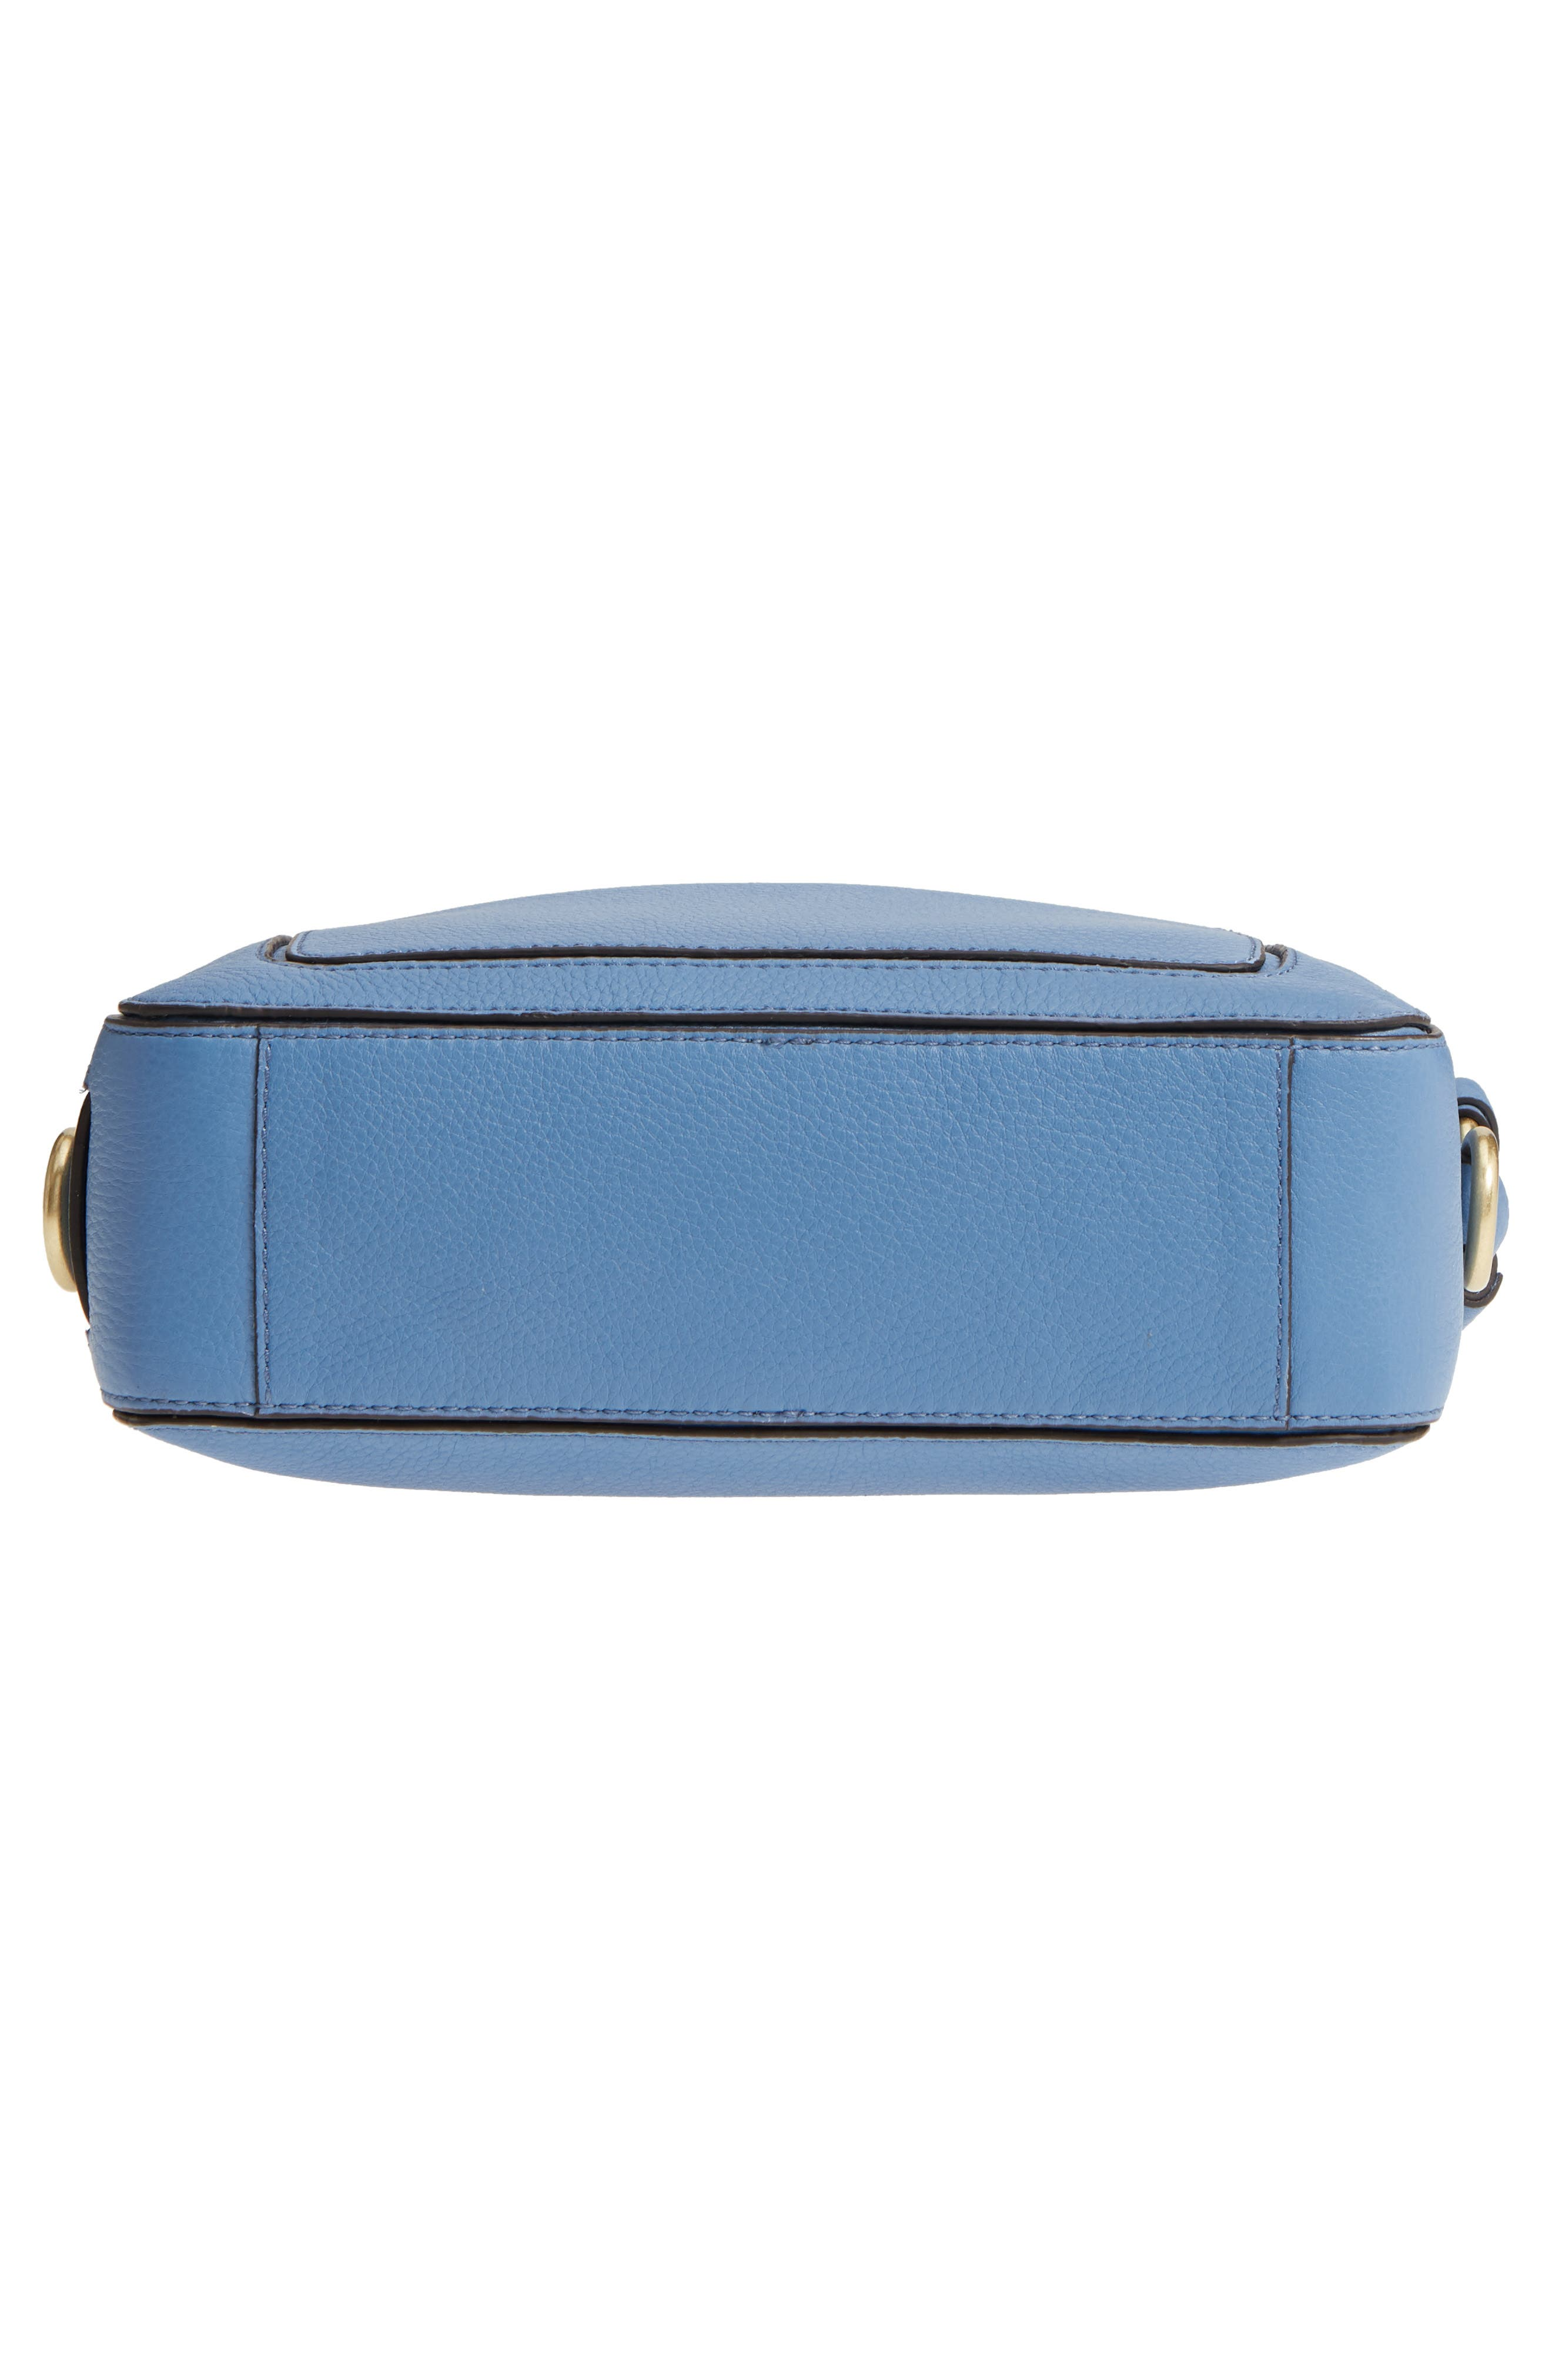 Cassidy RFID Pebbled Leather Camera Bag,                             Alternate thumbnail 24, color,